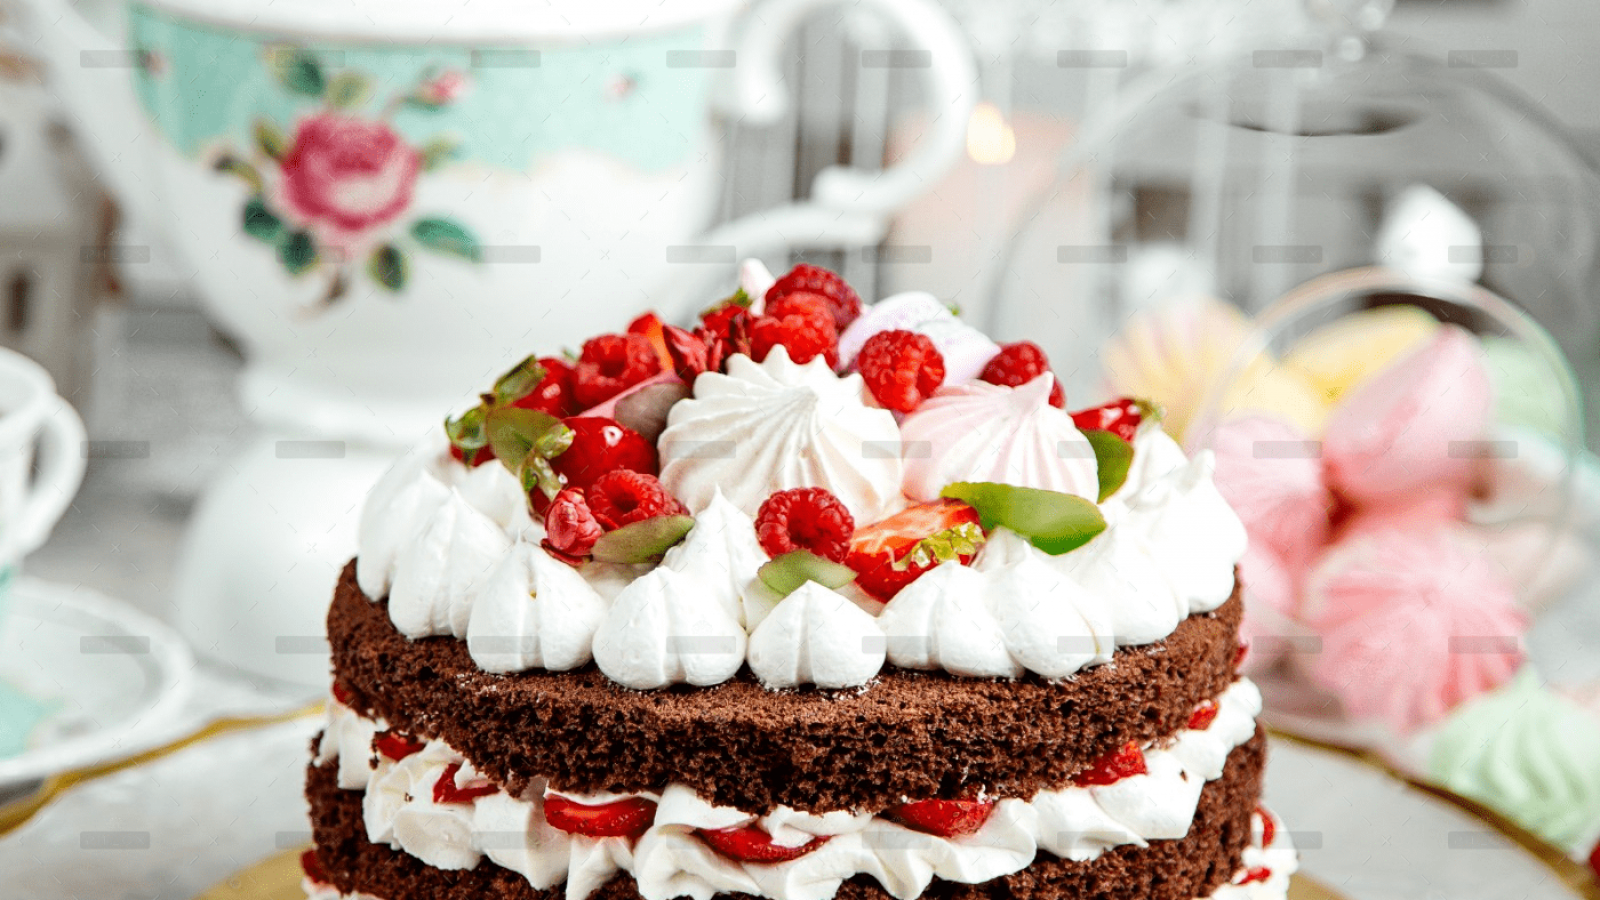 demo-attachment-1579-chocolate-cake-with-whipped-cream-fruits